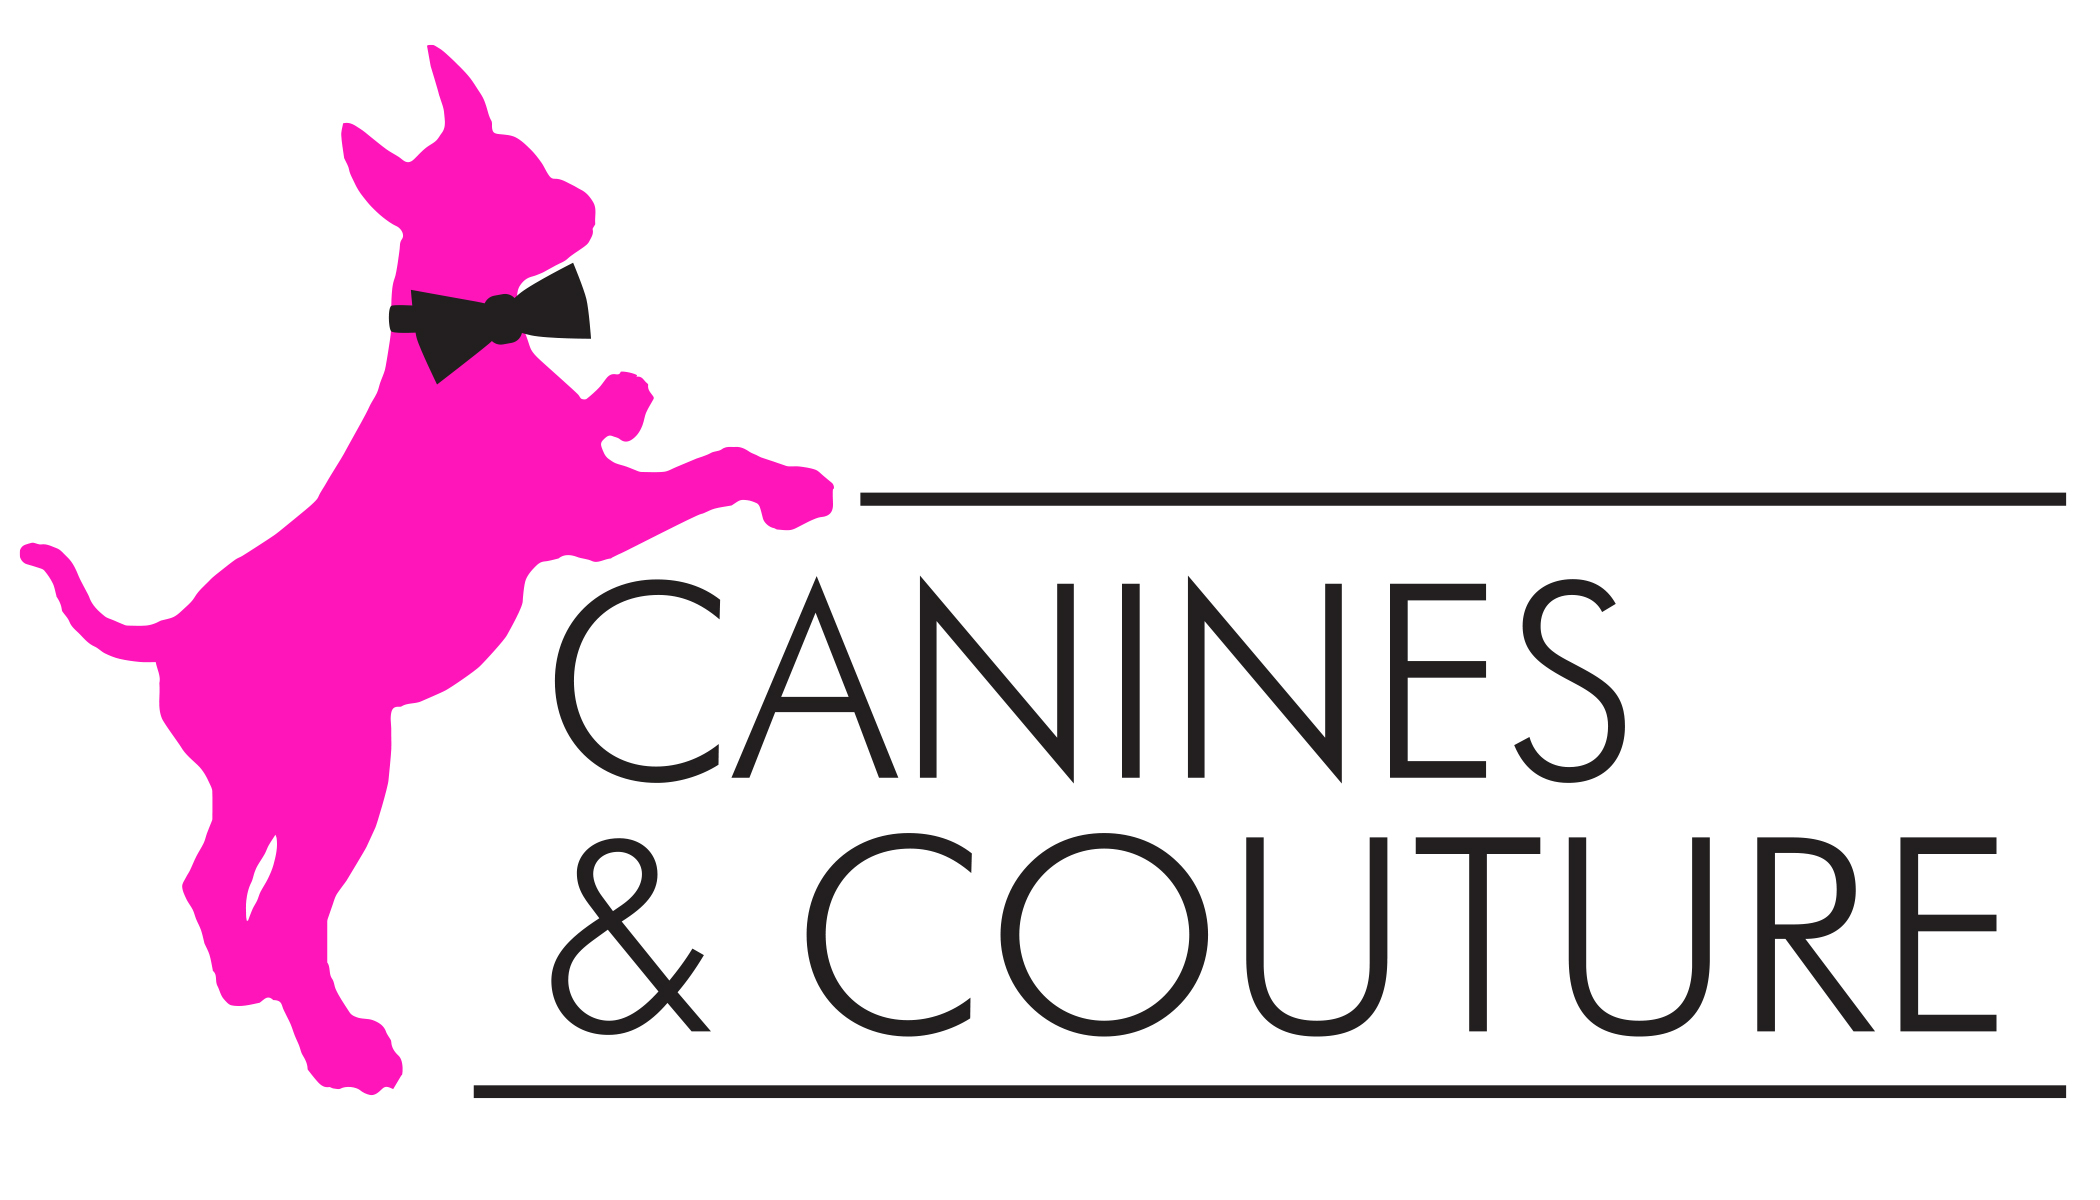 Canines & Couture logo